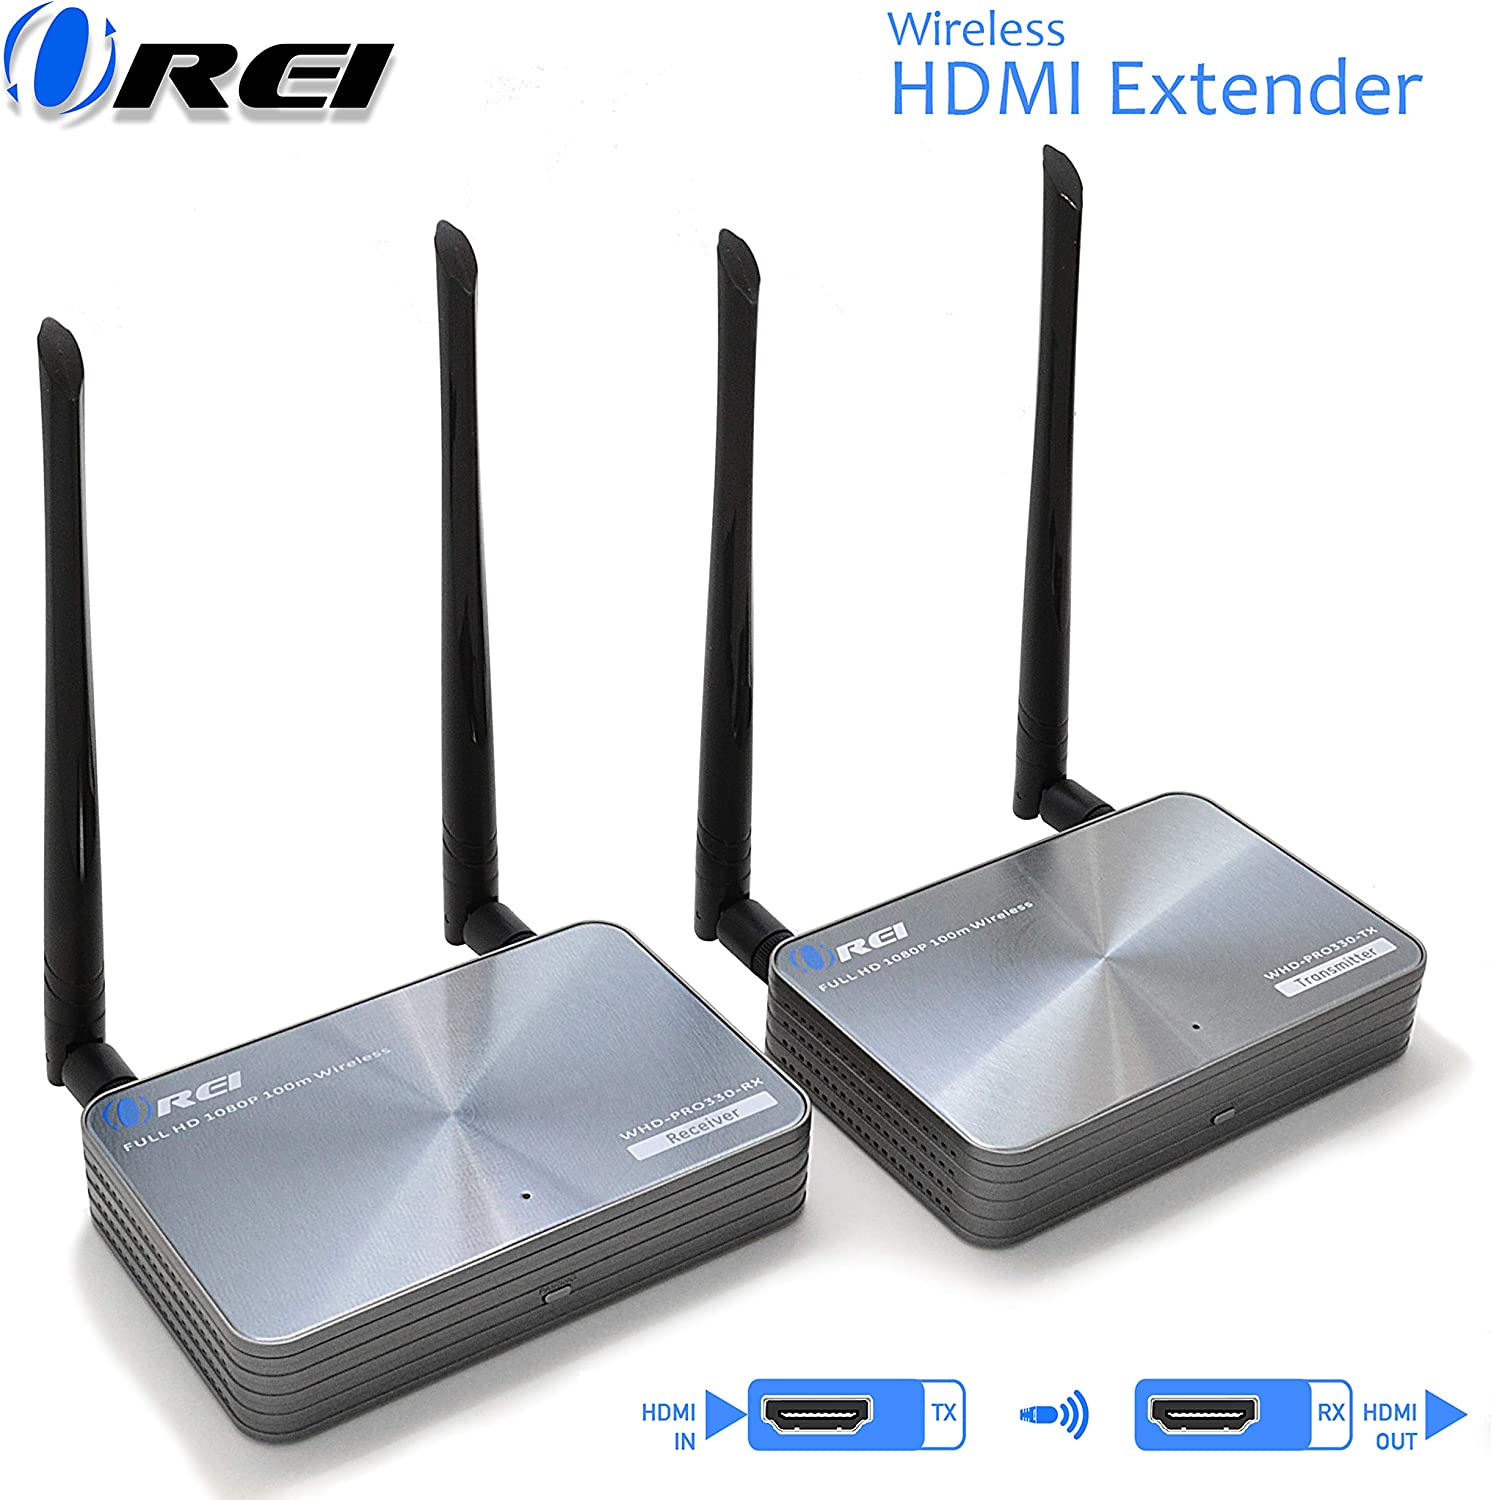 Orei Wireless HDMI Transmitter & Receiver Extender - Upto 300 Feet - Long Range - Perfect for Streaming from Laptop, PC, Cable, Netflix, YouTube, PS4 to HDTV/Projector - IR Support - Low Latency